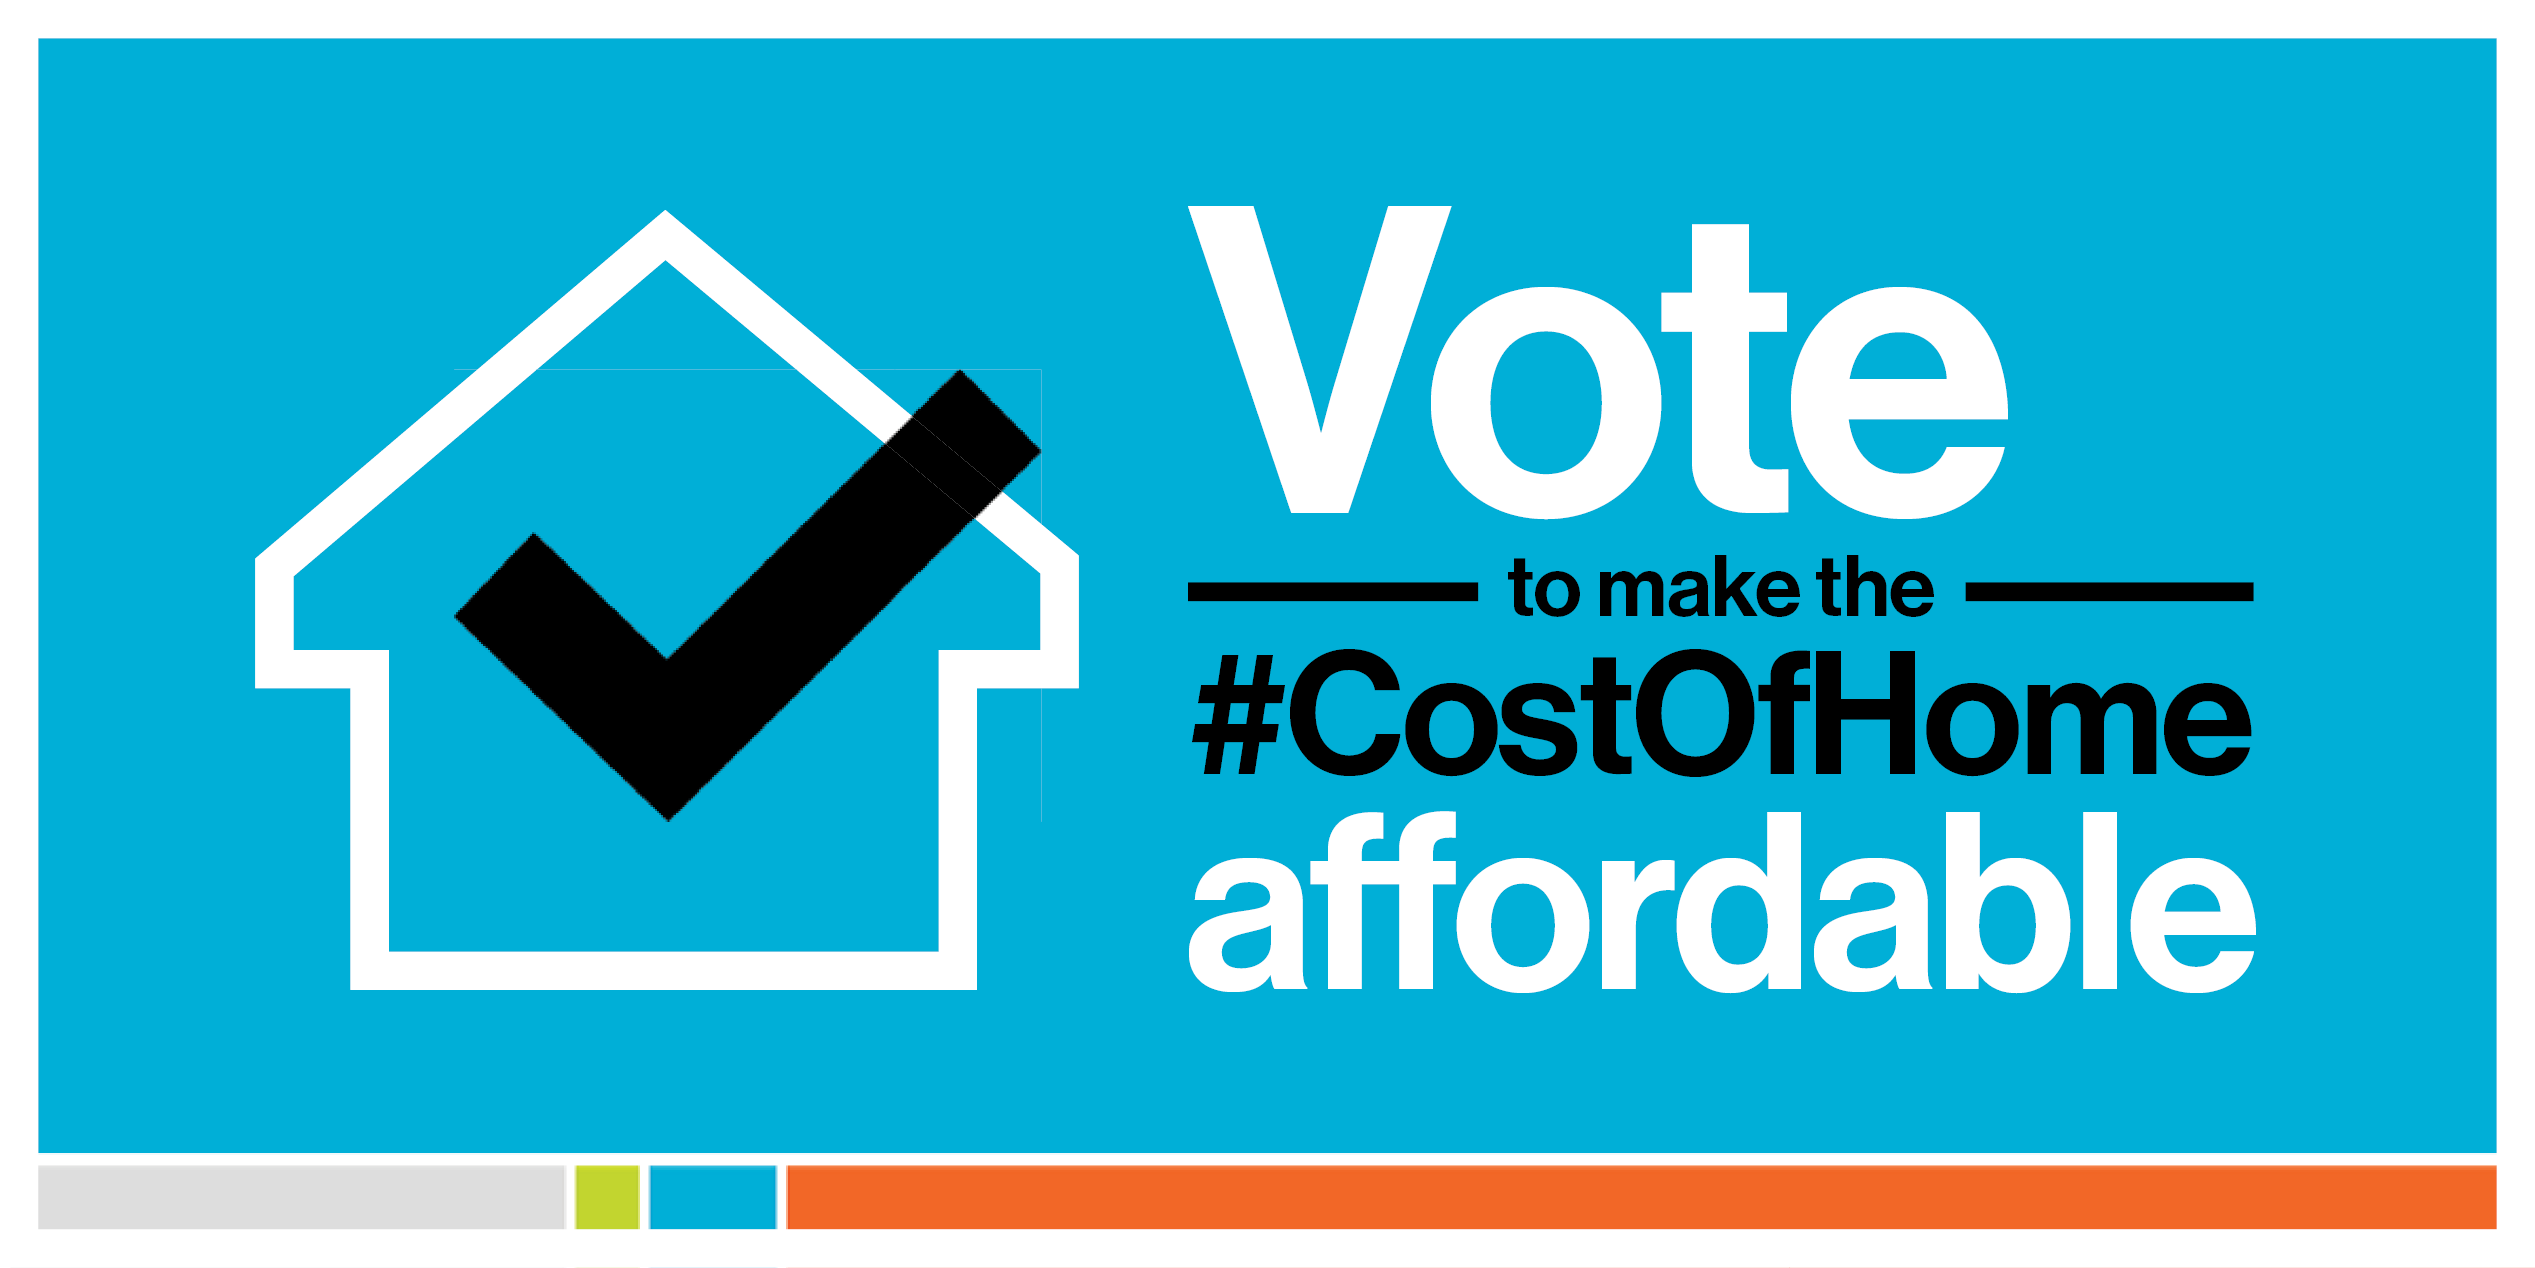 Vot to make the Cost Of Home Affordable